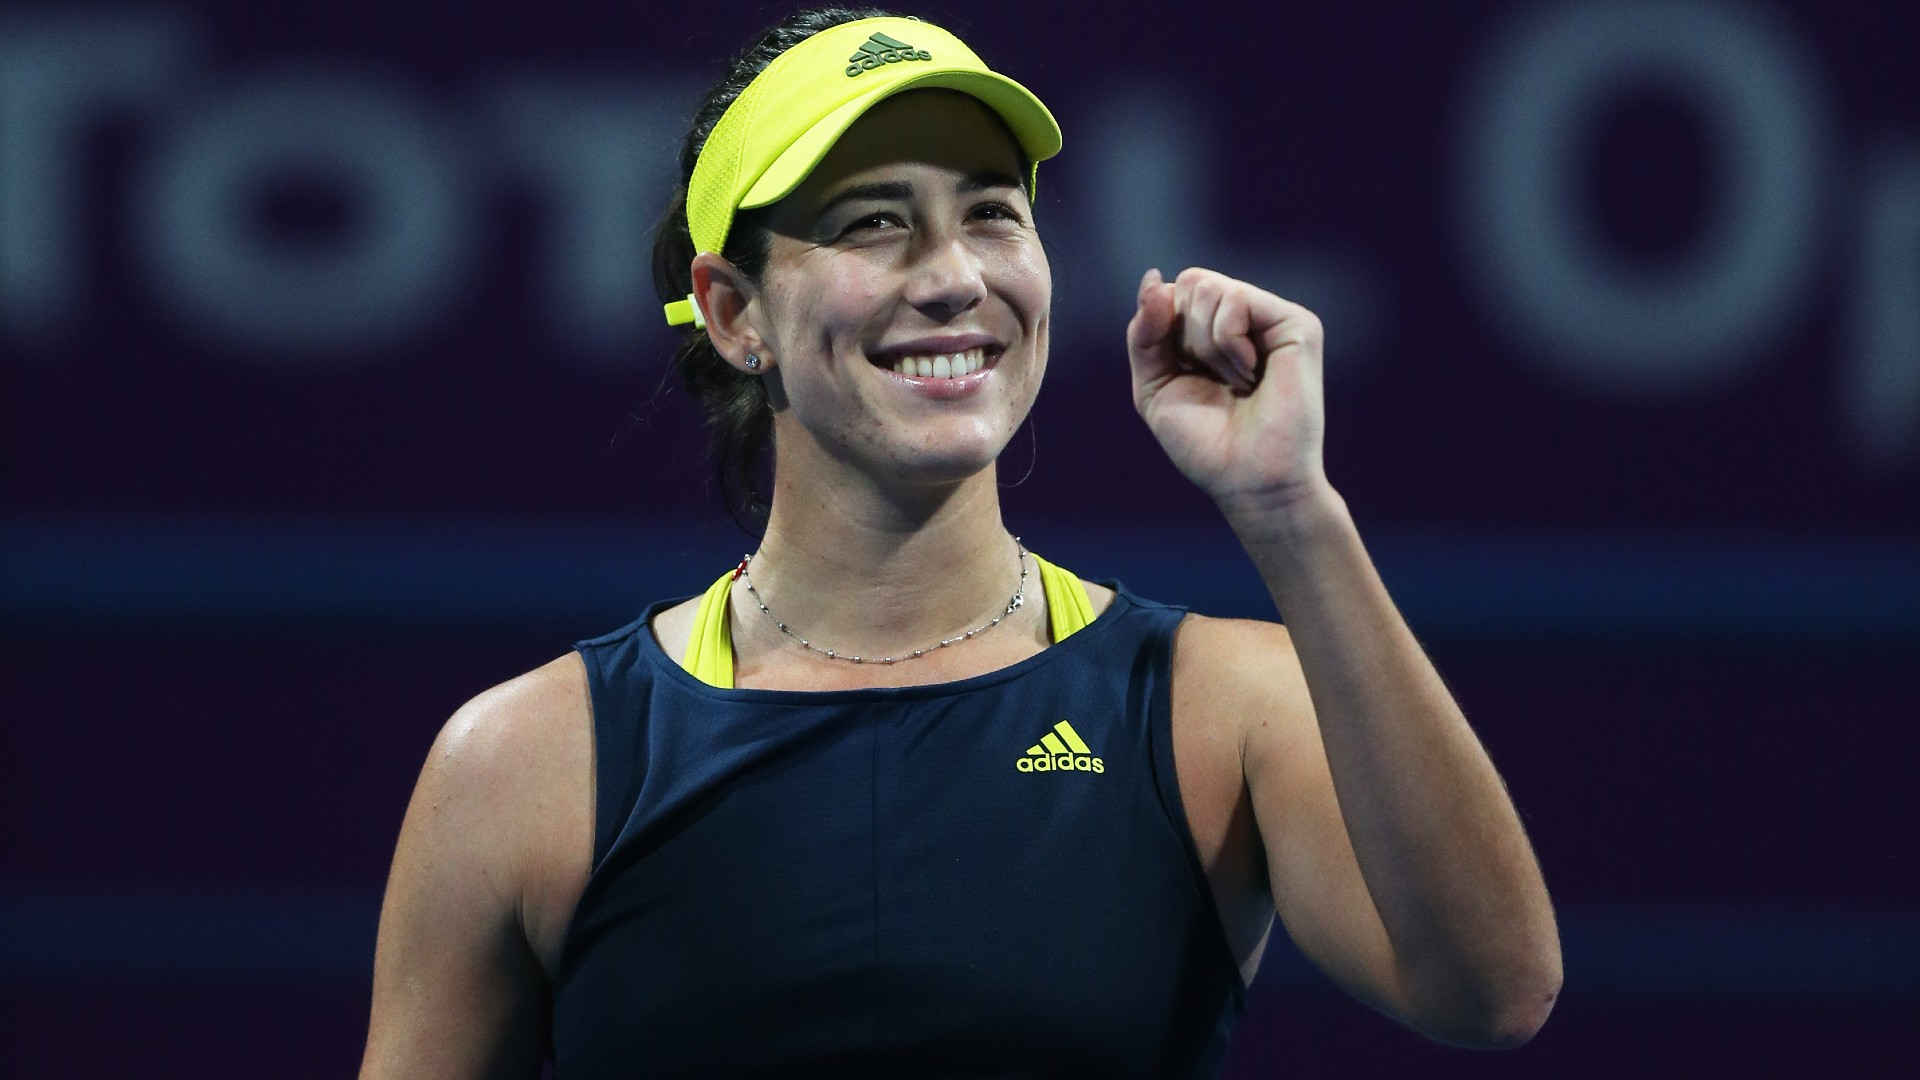 Muguruza ends Sabalenka's reign as Azarenka, Kvitova progress in Qatar